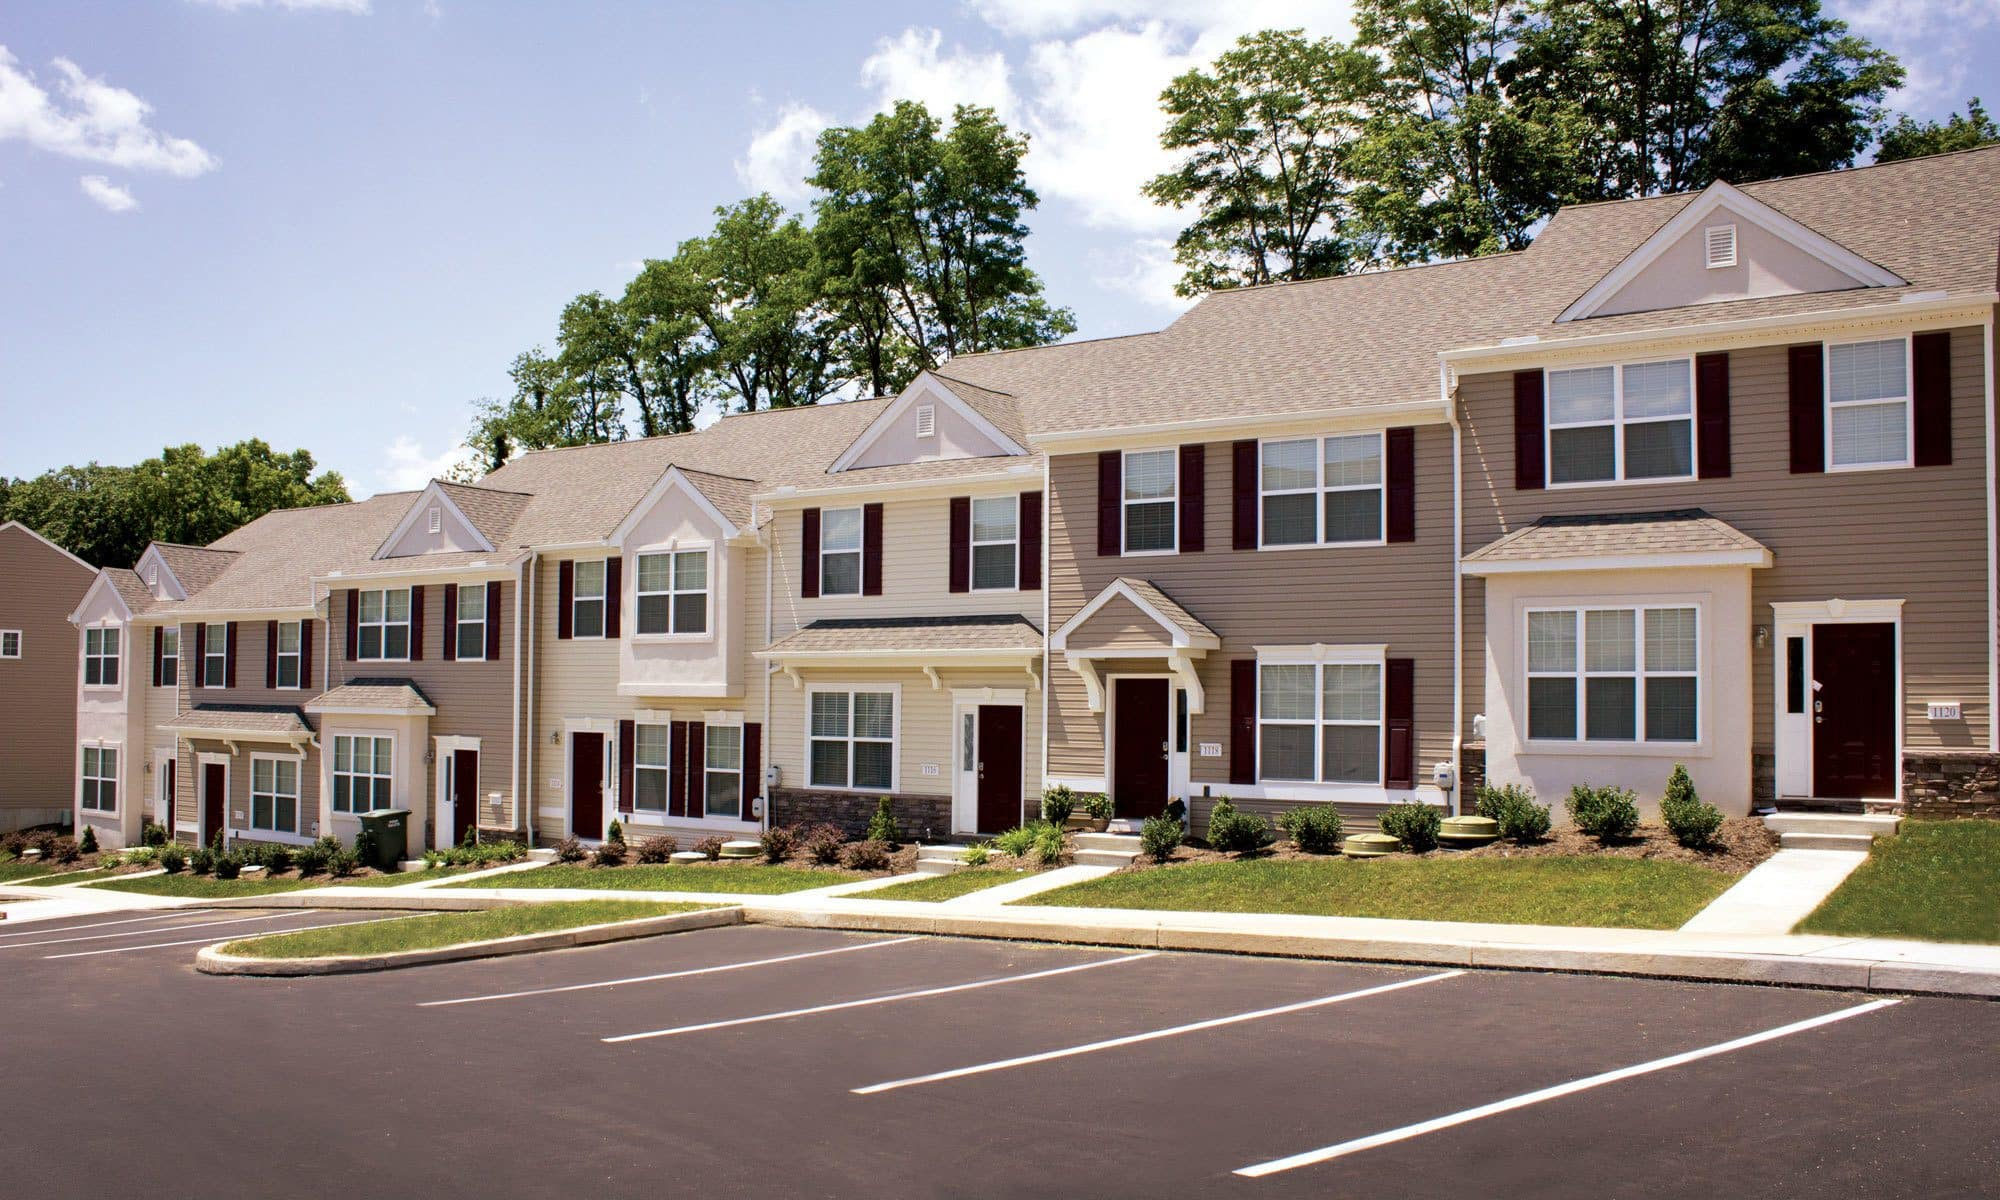 Emerald pointe townhomes swatara township harrisburg pa for Home builders in central pa